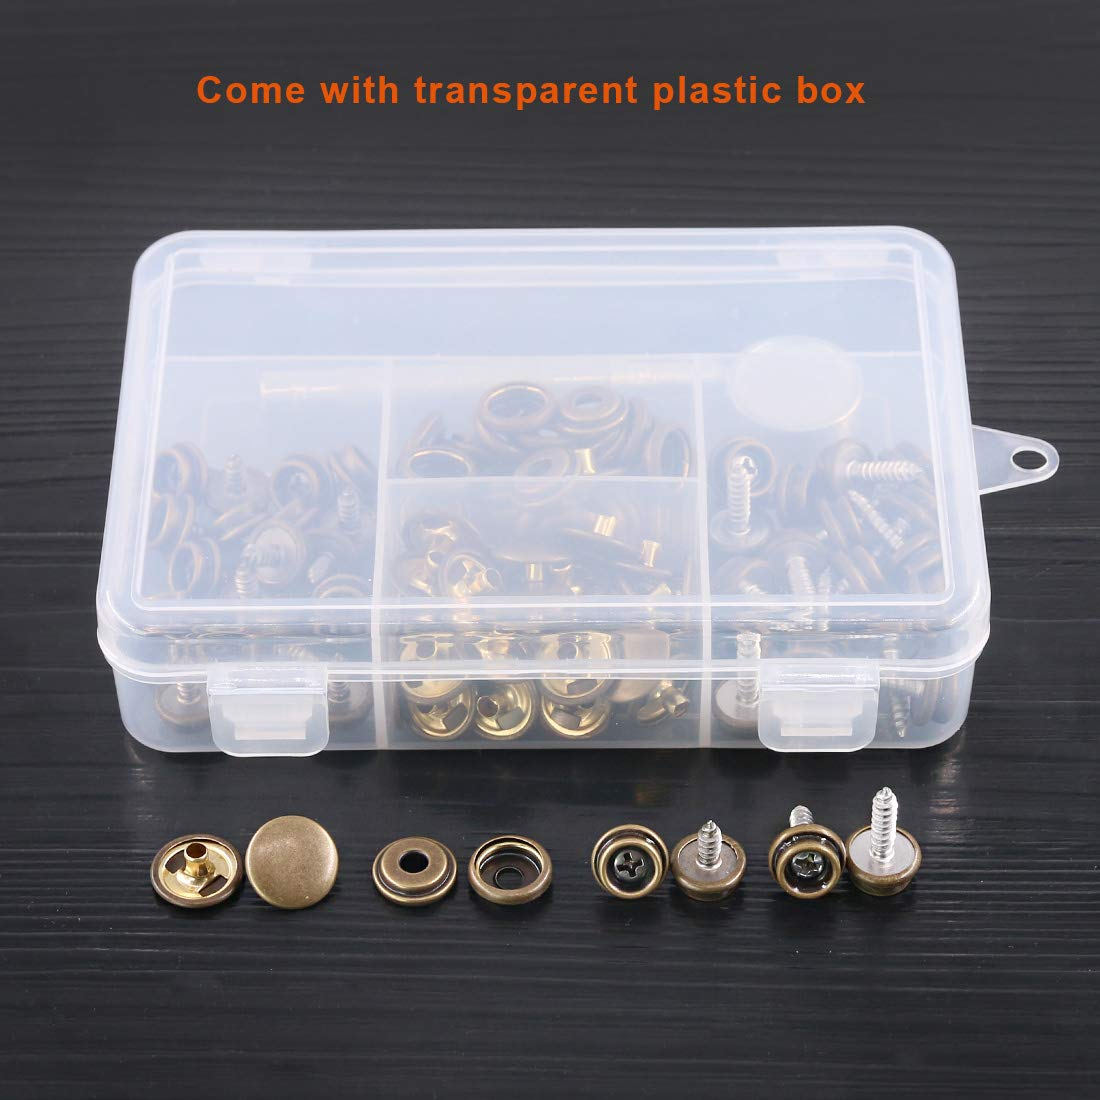 Rustark 120-Pcs Bronze Fastener Screw Snaps Boat Canvas Cover Snap Button Cap Marine Grade 3//8 Socket Stainless Steel Screw with Snap Setting Tool Kit for Furniture Canvas Fabric Boats